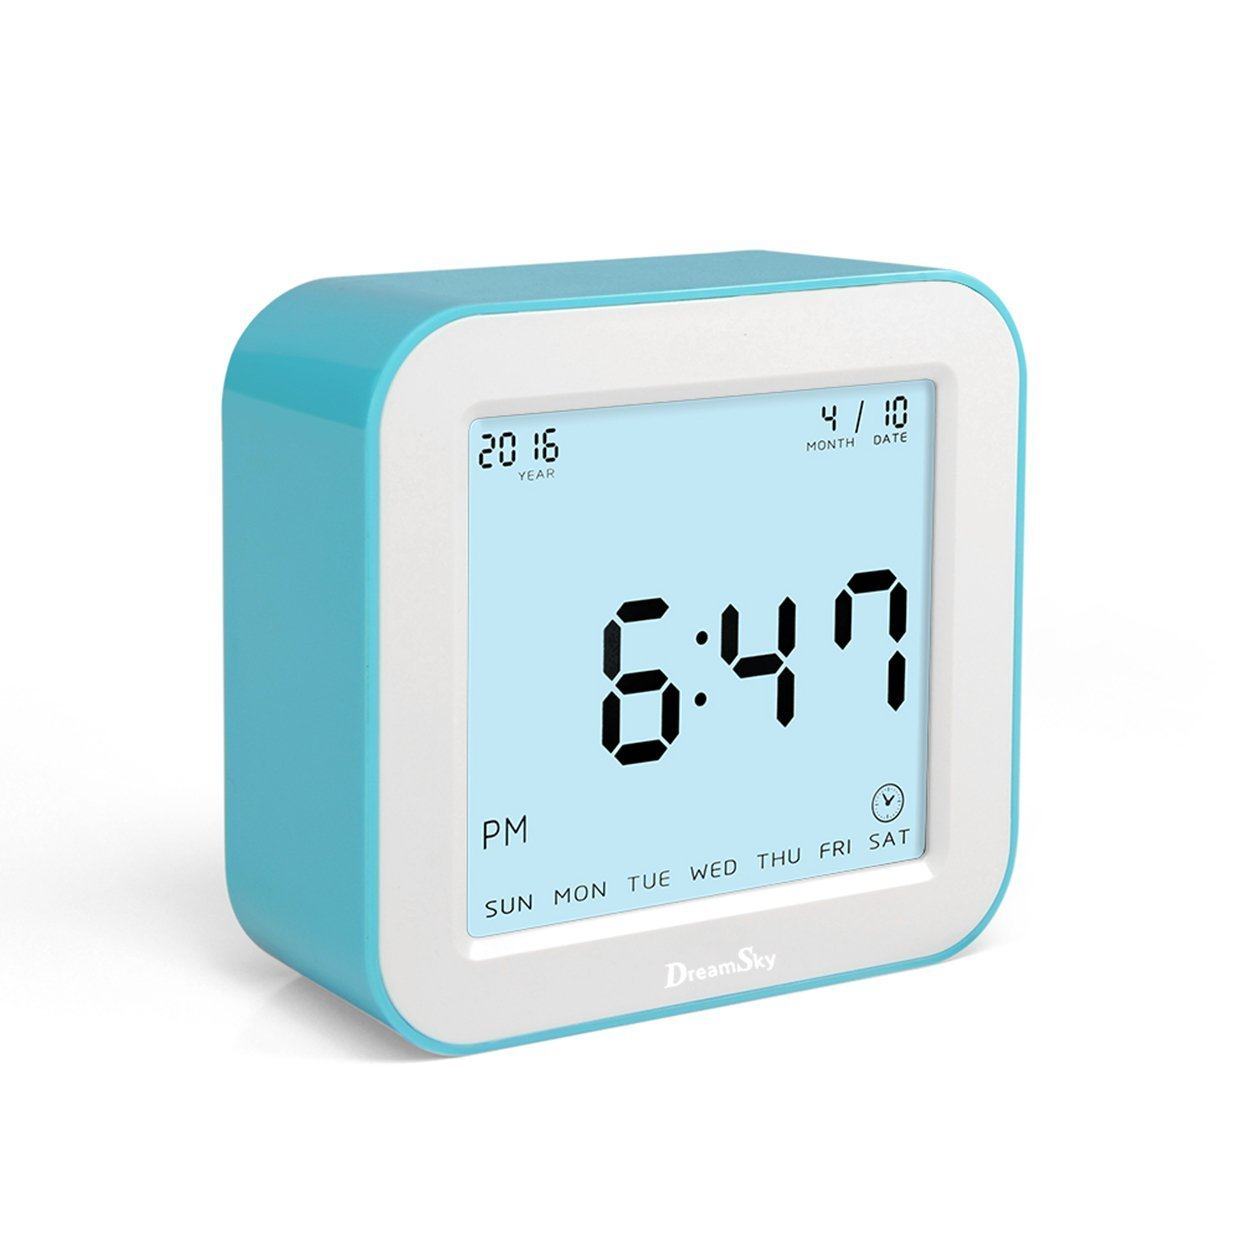 DreamSk Dual Alarm Clock With Snooze And Smart Nightlight,Simple To Set,Battery Operated Clock For Bedroom/Bedside/Nightstand. (blue)